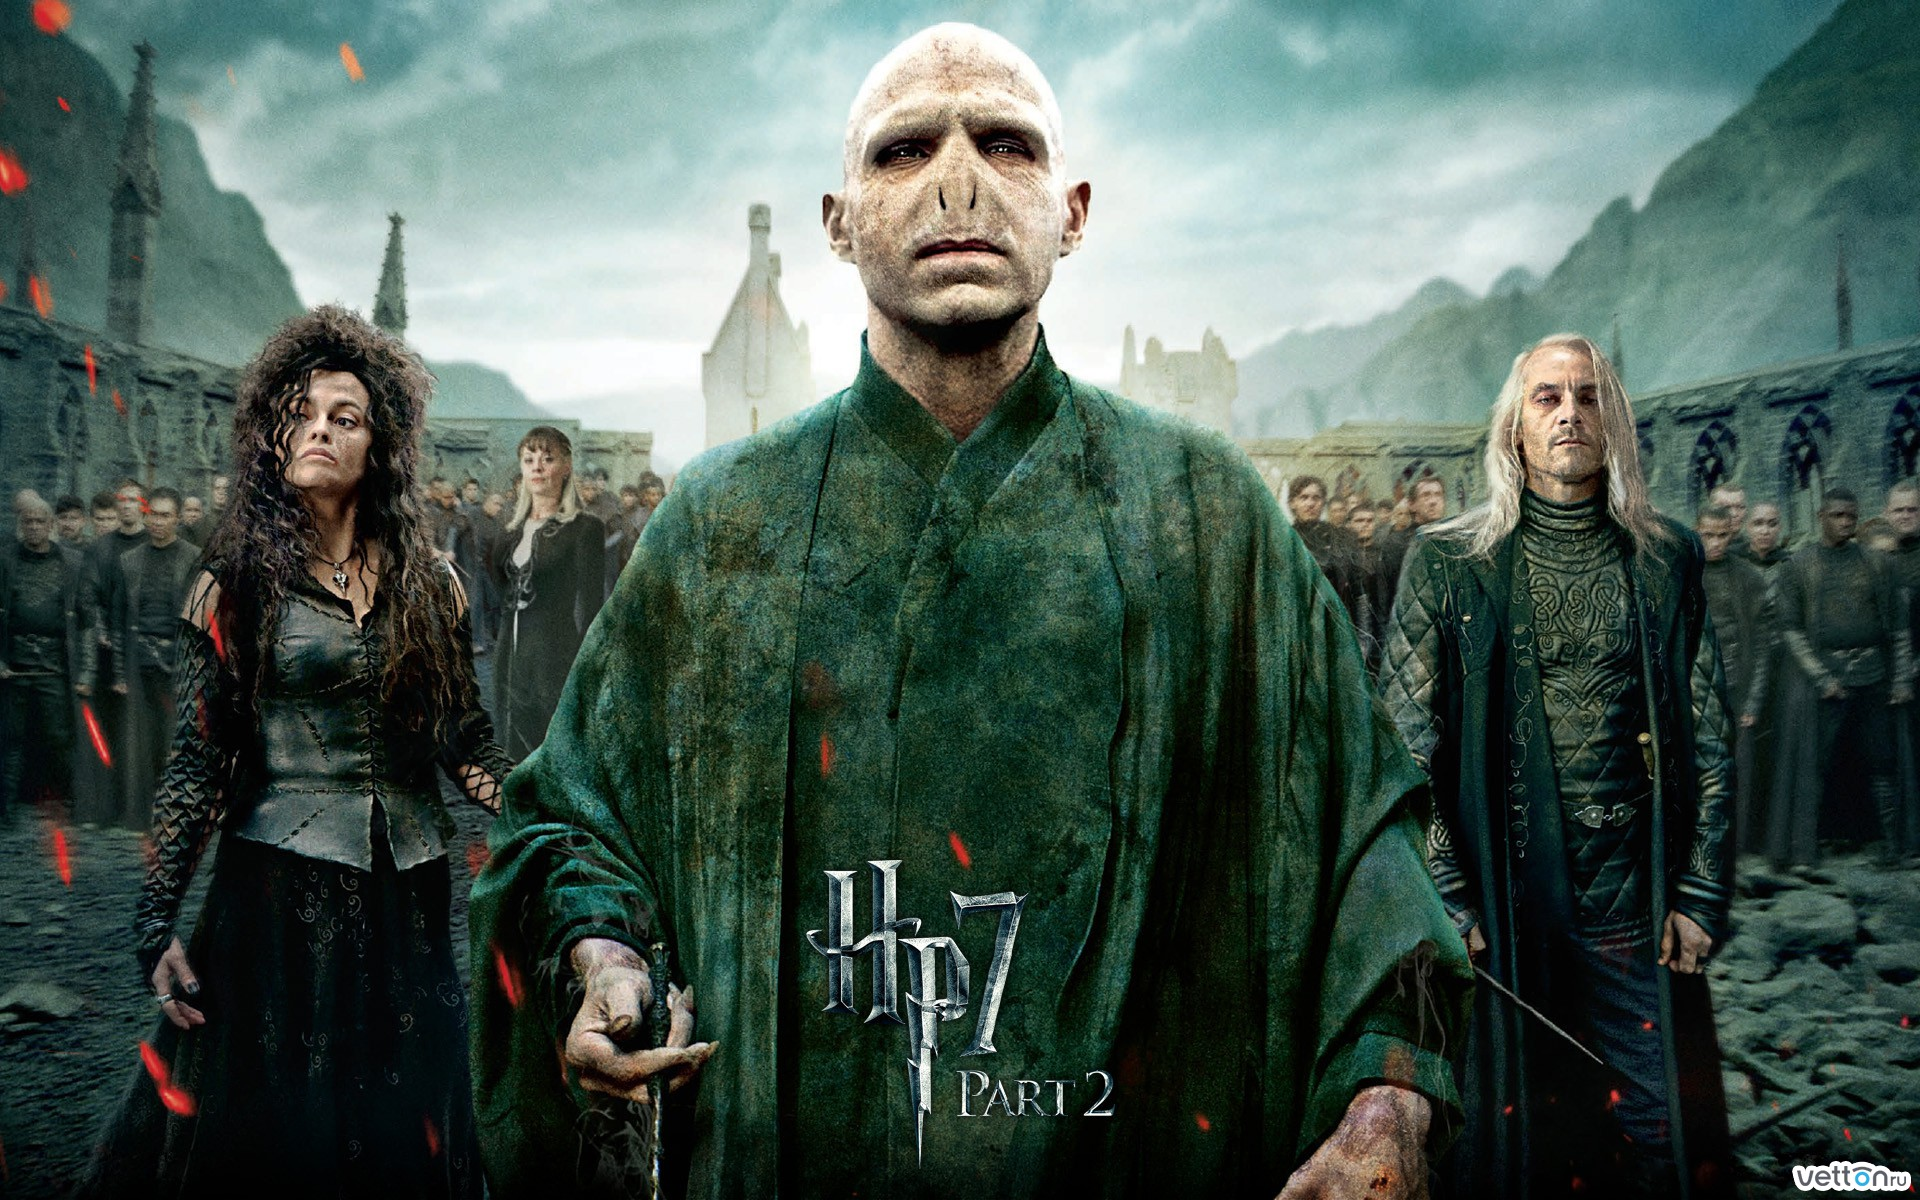 a battle, movie, harry potter, the deathly hallows part 2